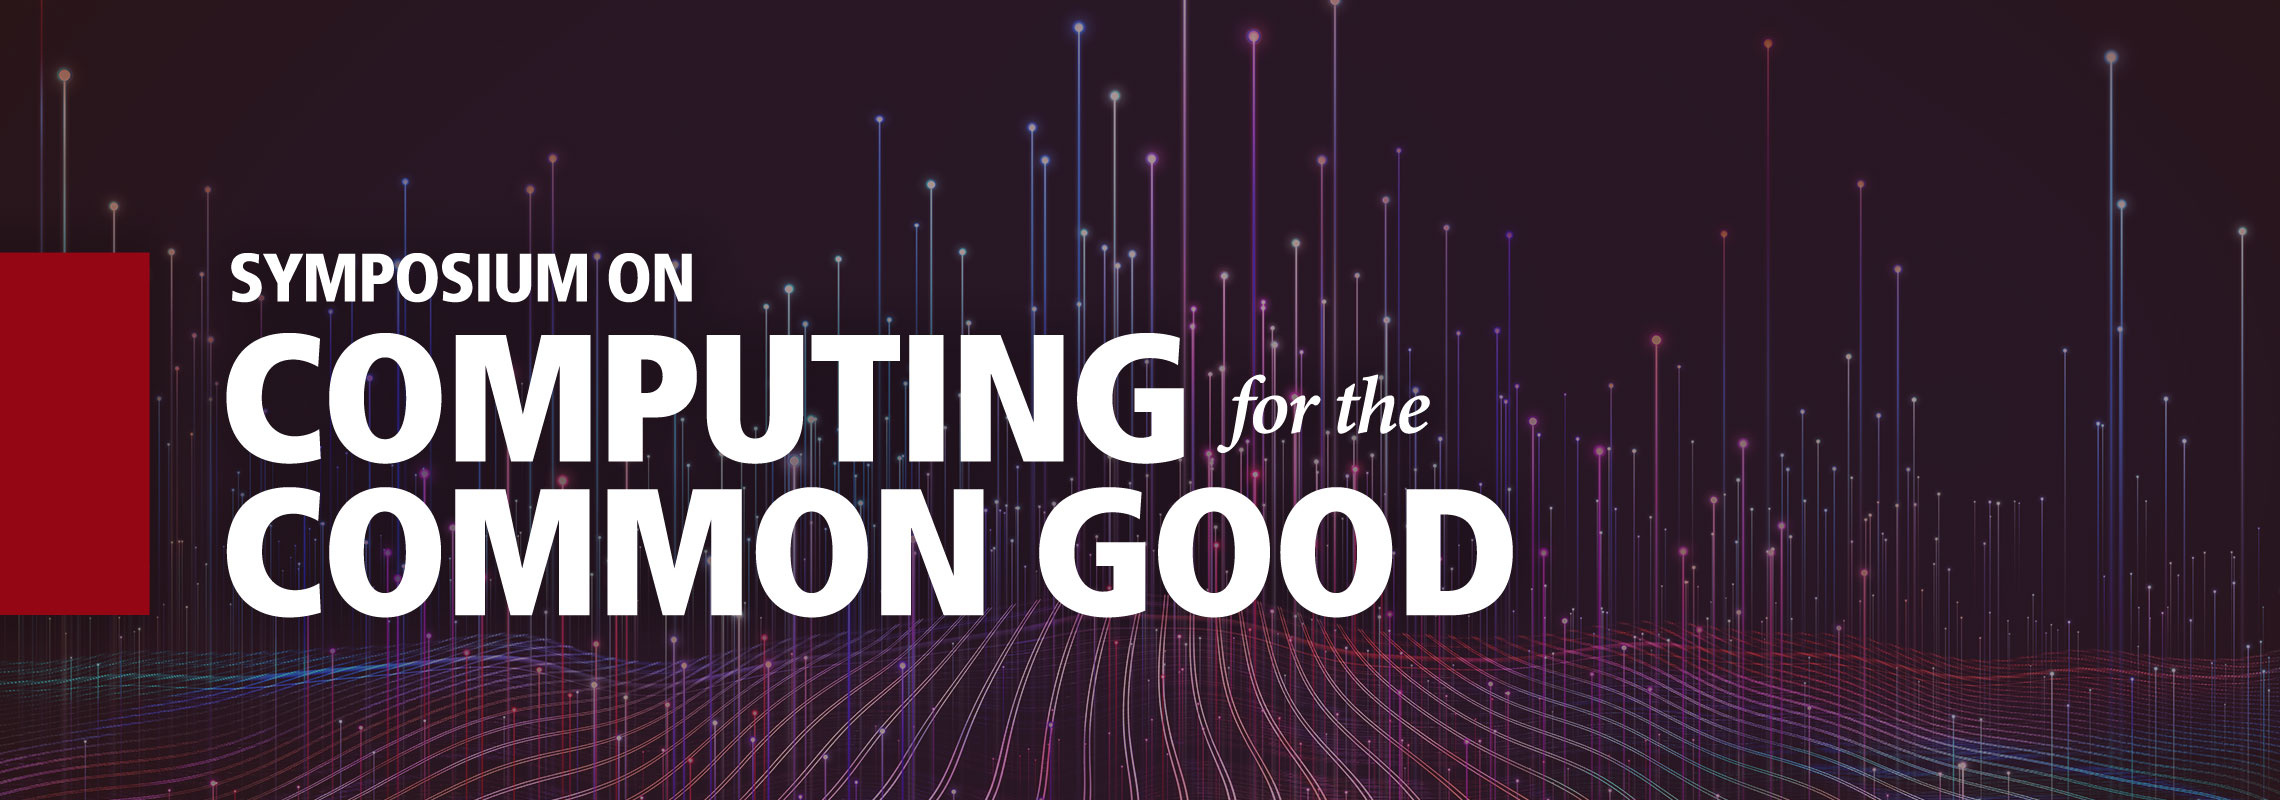 Symposium on Computing for the Common Good